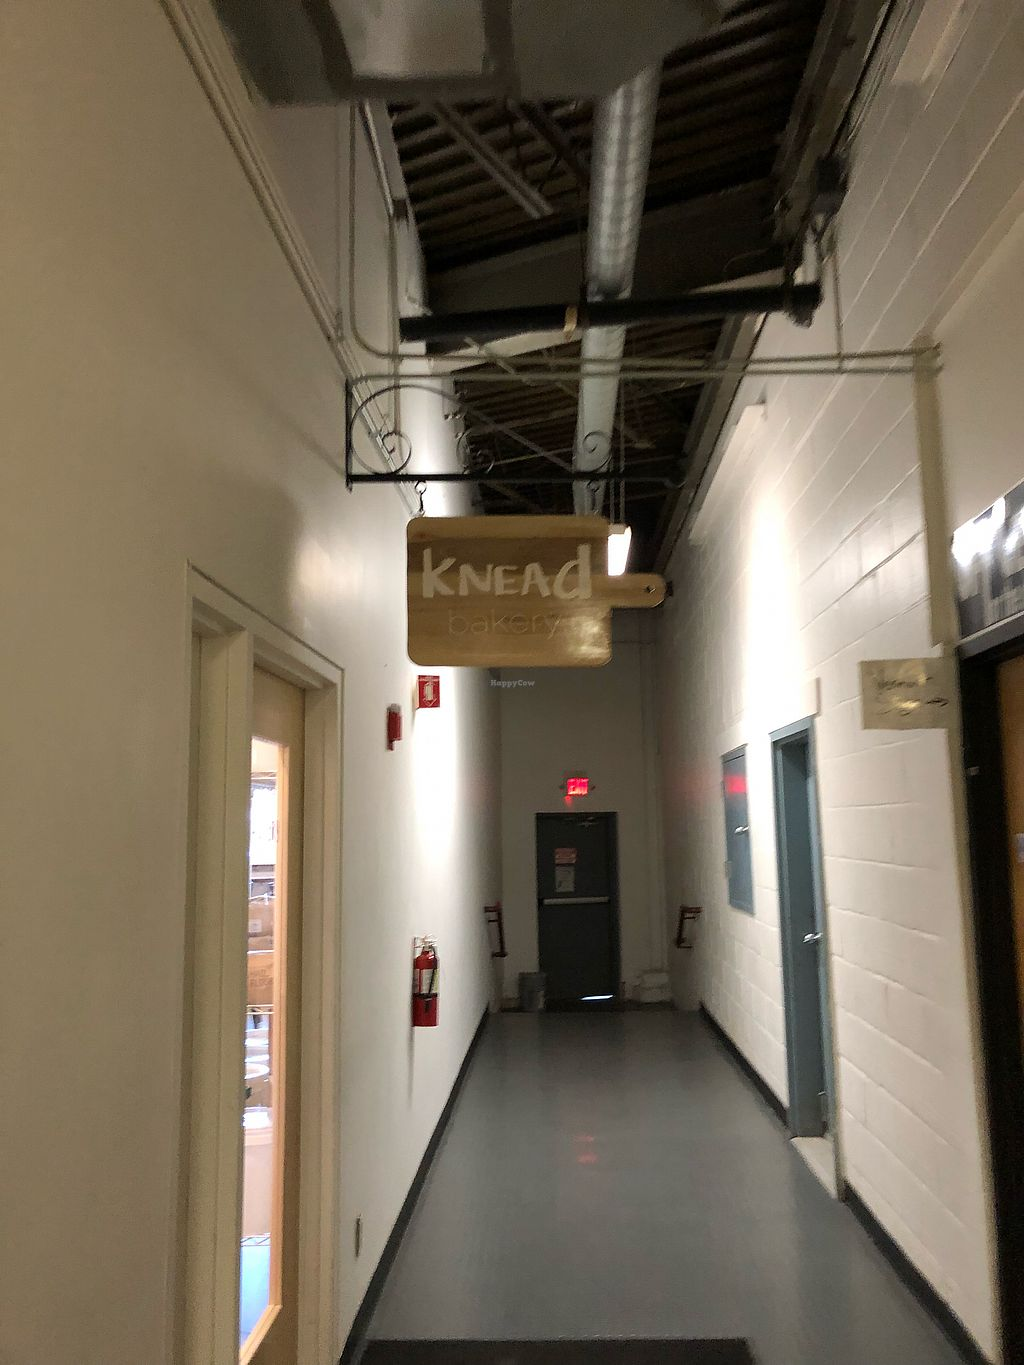 """Photo of Knead Bakery  by <a href=""""/members/profile/Bgeezy"""">Bgeezy</a> <br/>Kind of hard to find entrance.. follow the signs <br/> April 7, 2018  - <a href='/contact/abuse/image/111070/382095'>Report</a>"""